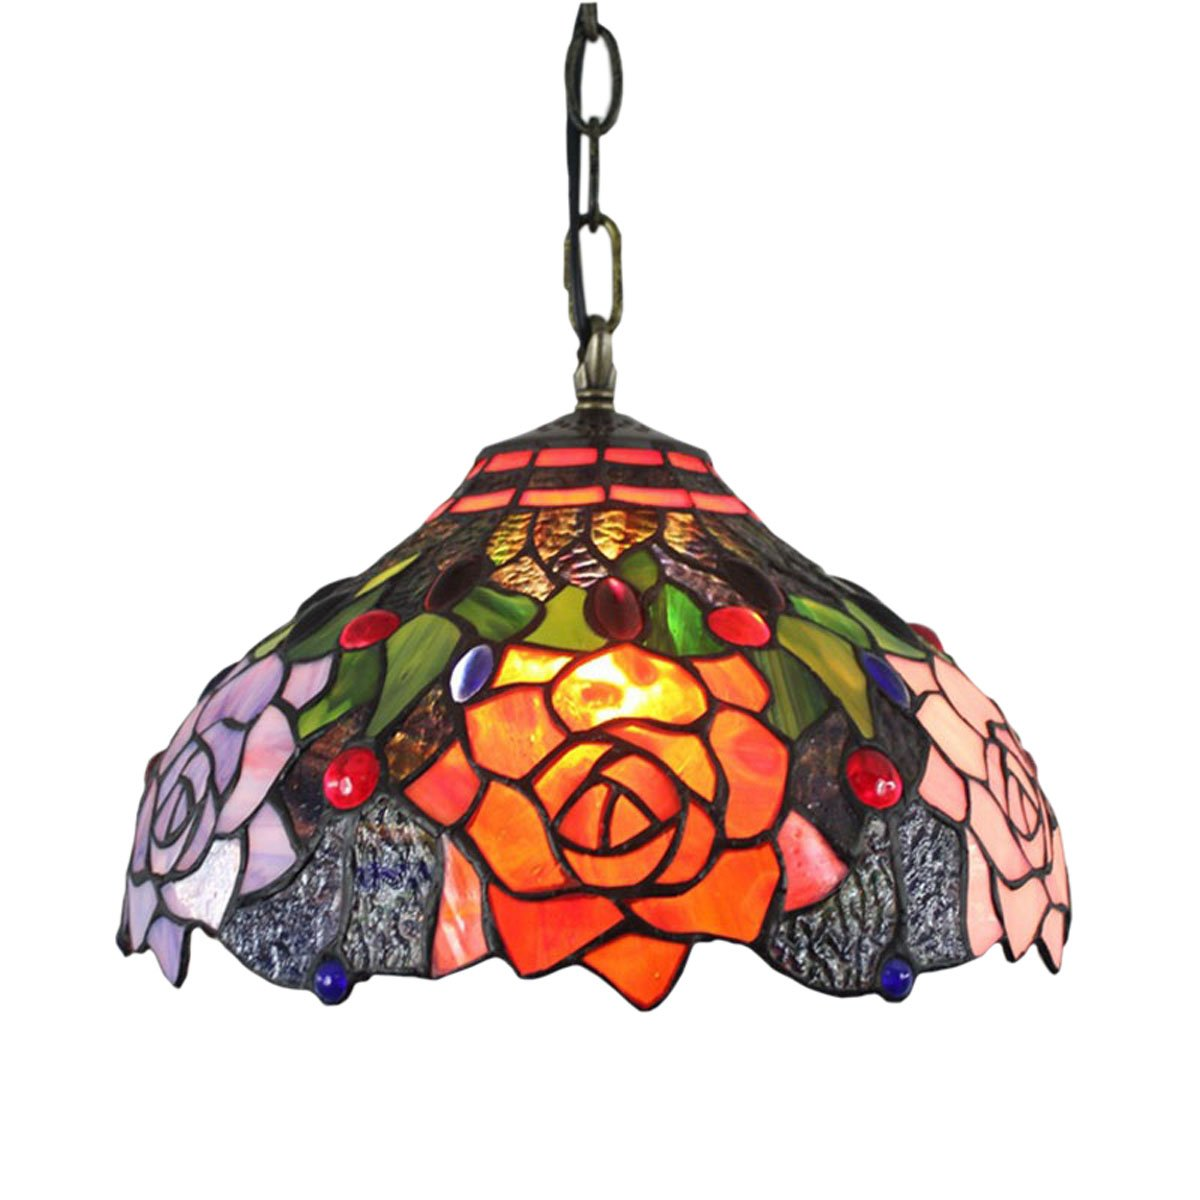 Fumat tiffany led pendant lights for dining room color glass hanging